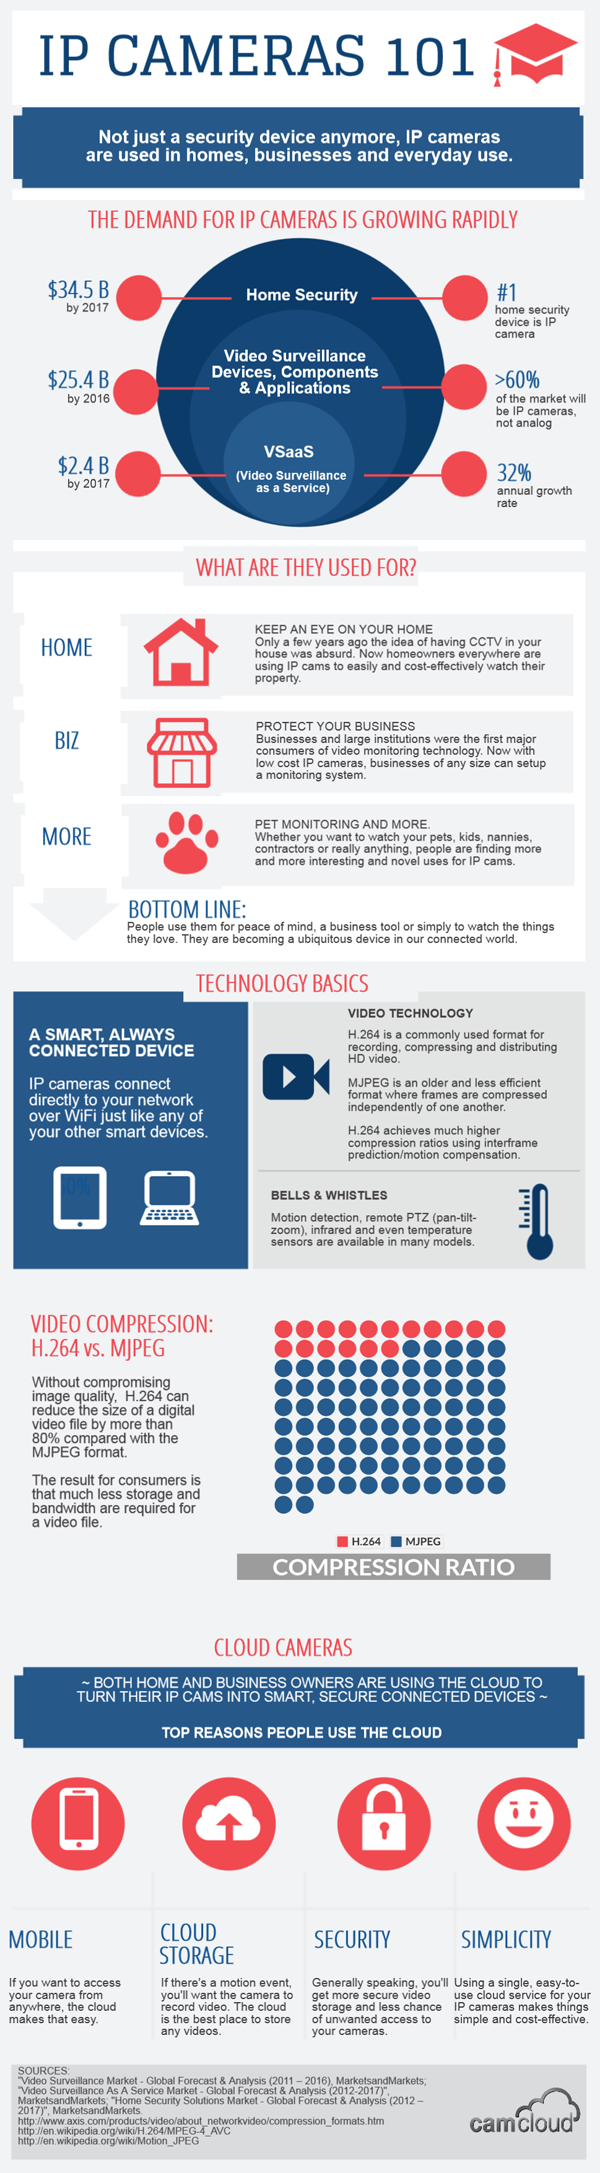 infographic-ip-cameras